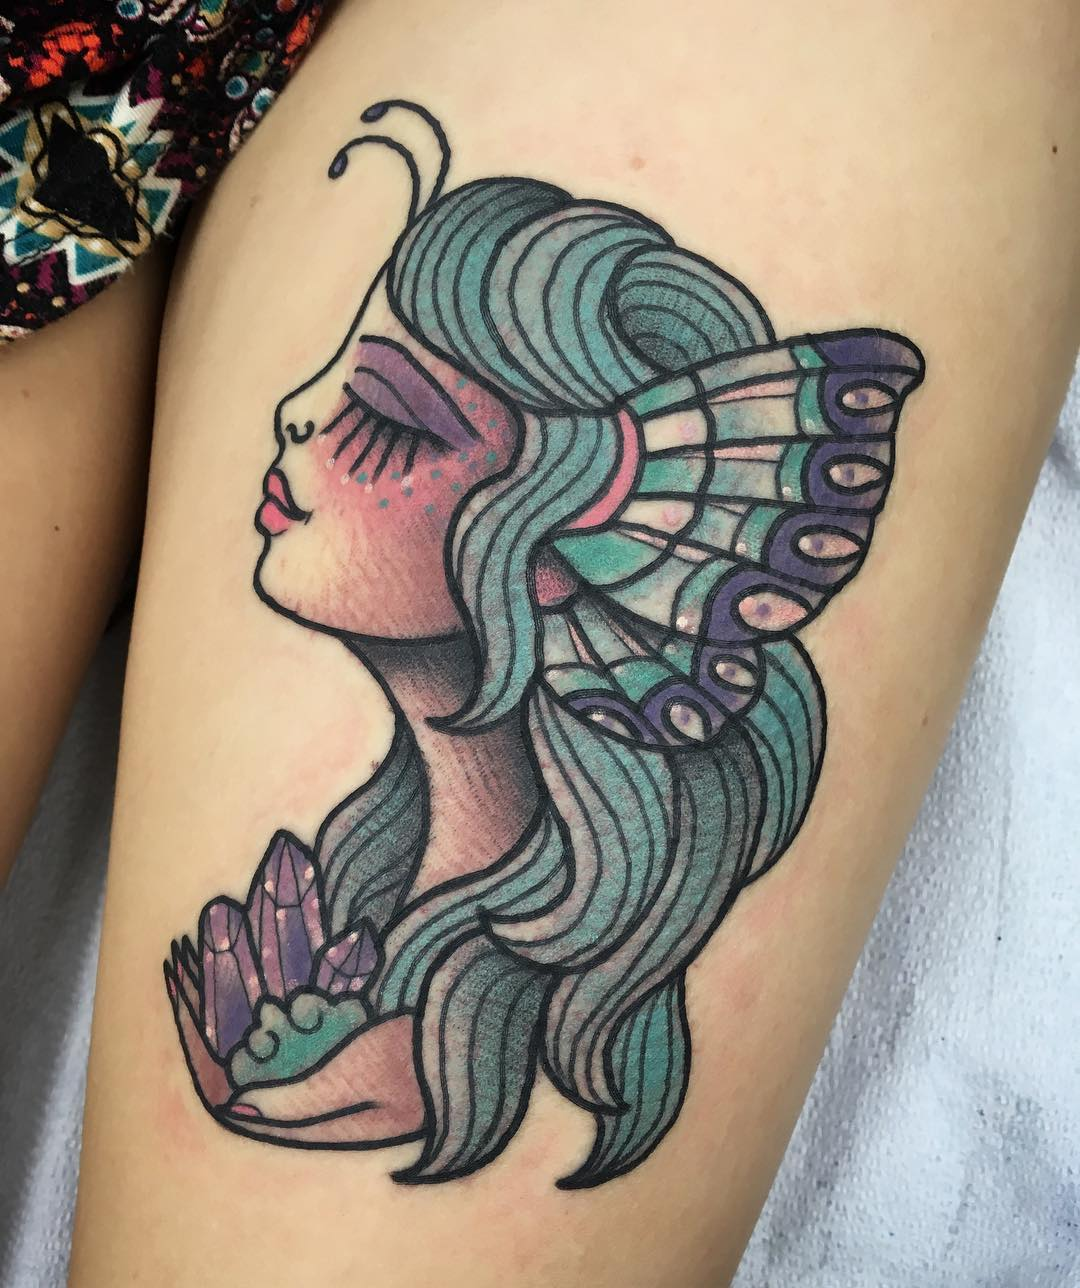 Fairy Tattoos Designs Ideas And Meaning: 75+ Charming Fairy Tattoos Designs